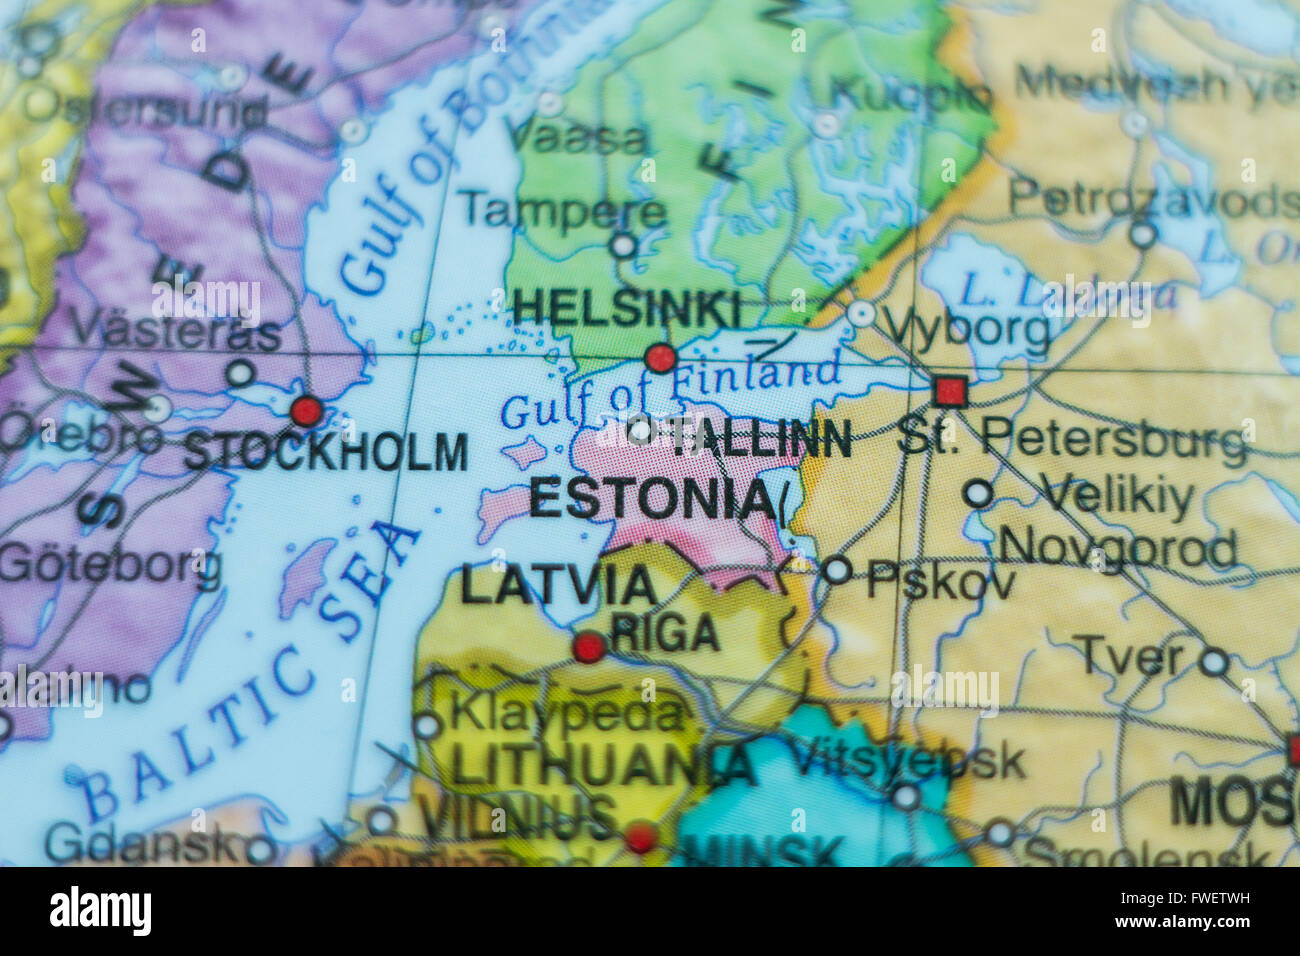 Tallinn Estonia City Map Stock Photos Tallinn Estonia City Map